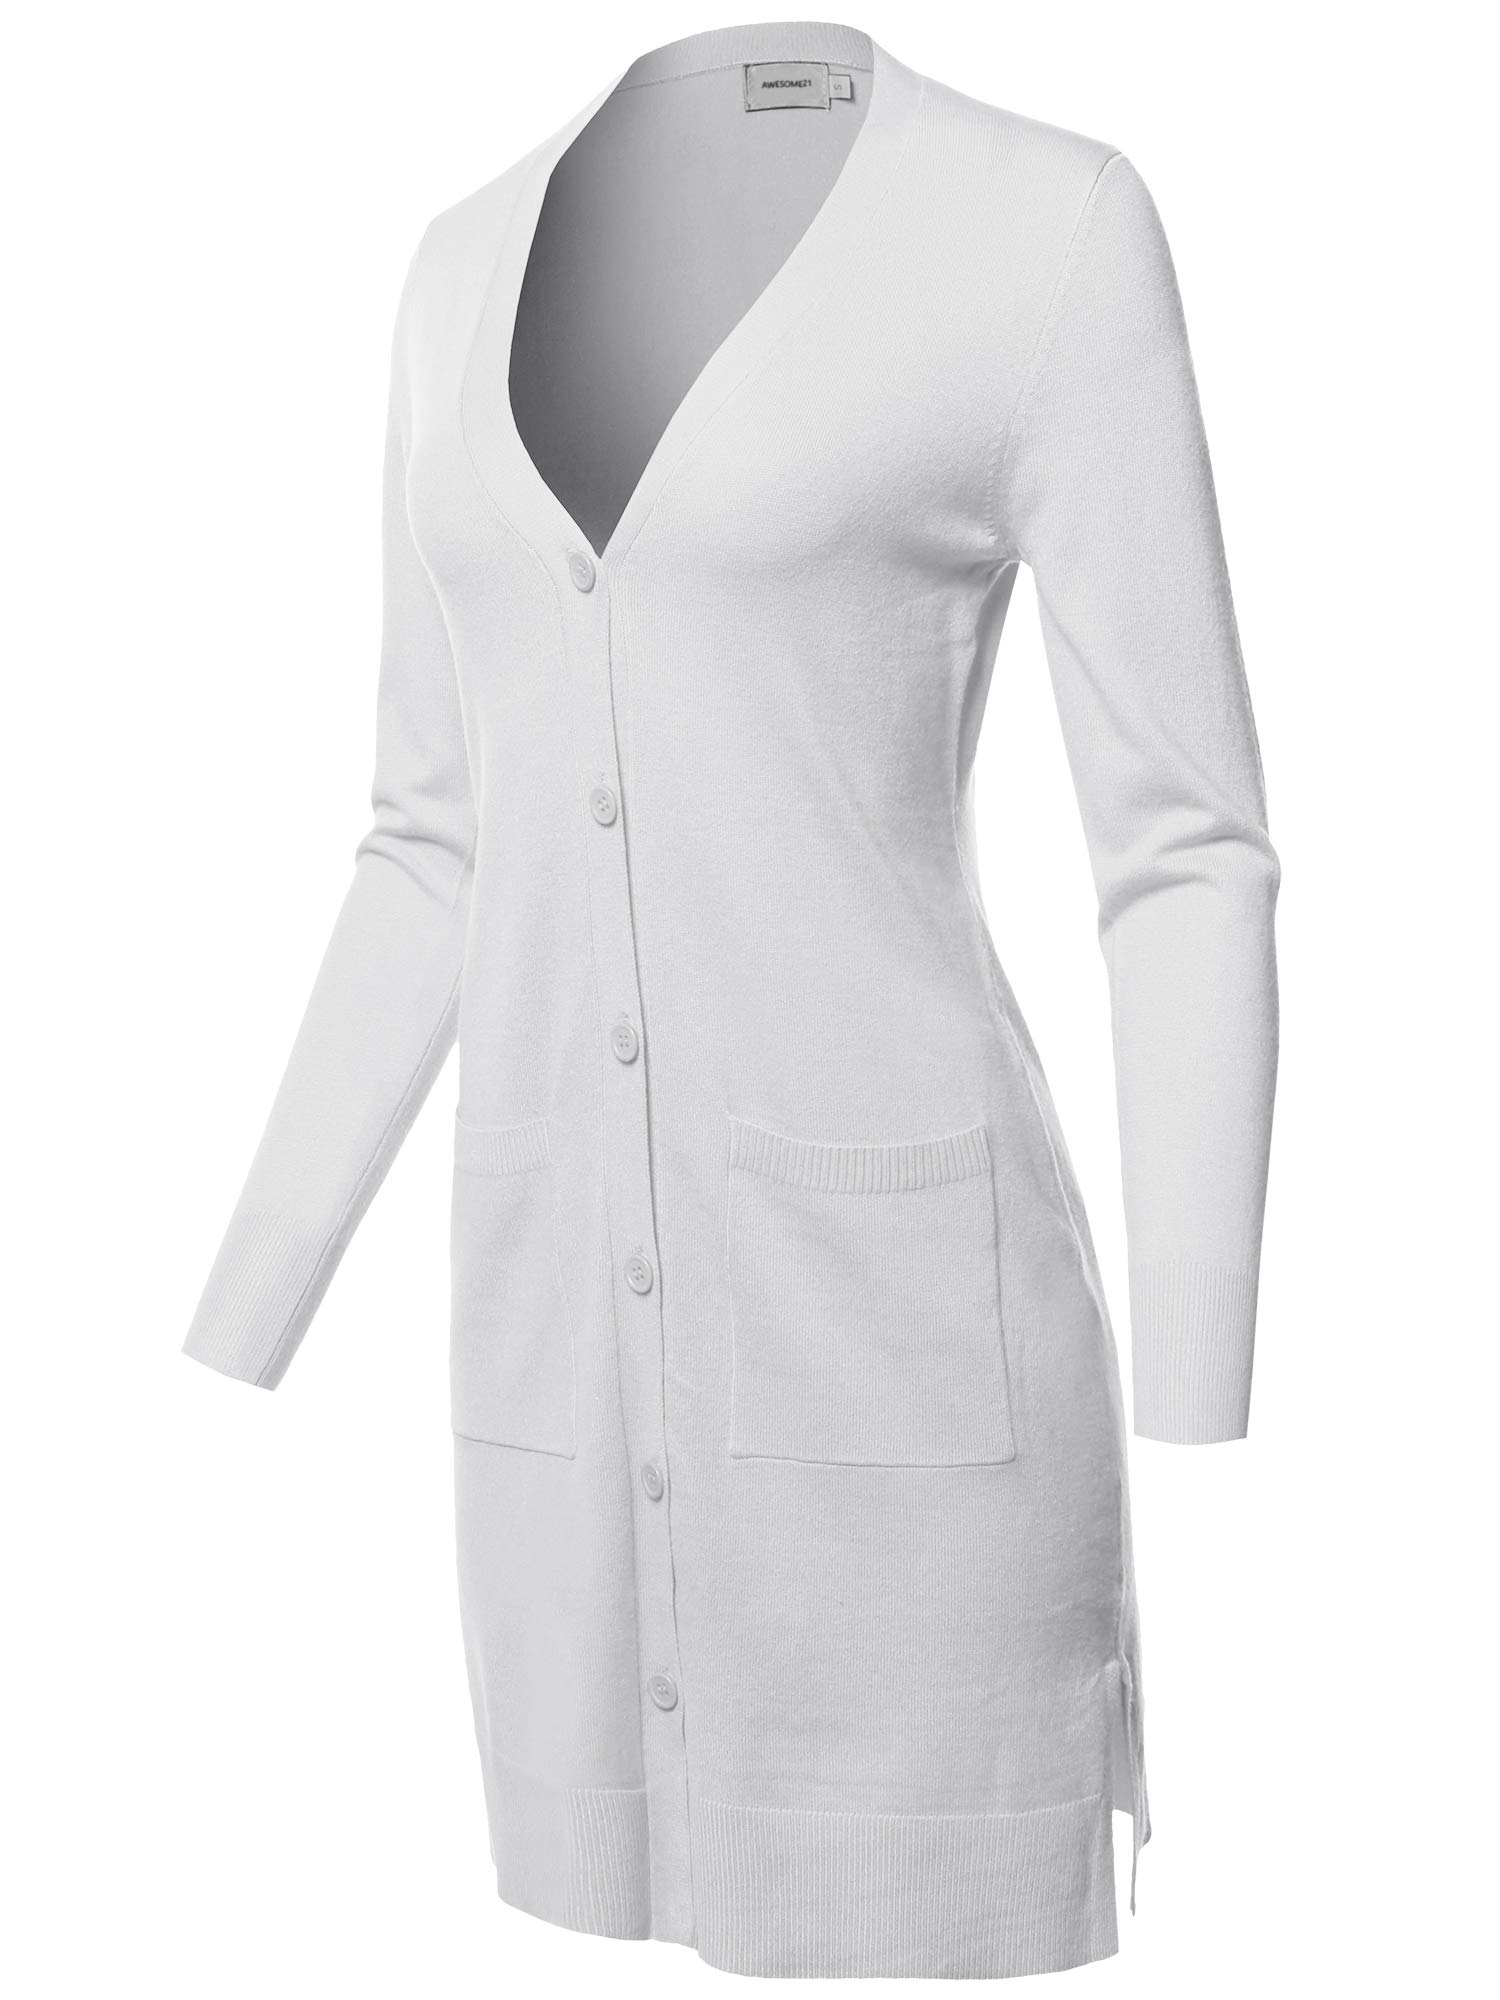 Awesome21 Casual Button Up Long-Line Sweater Viscose Knit Cardigan White Size M